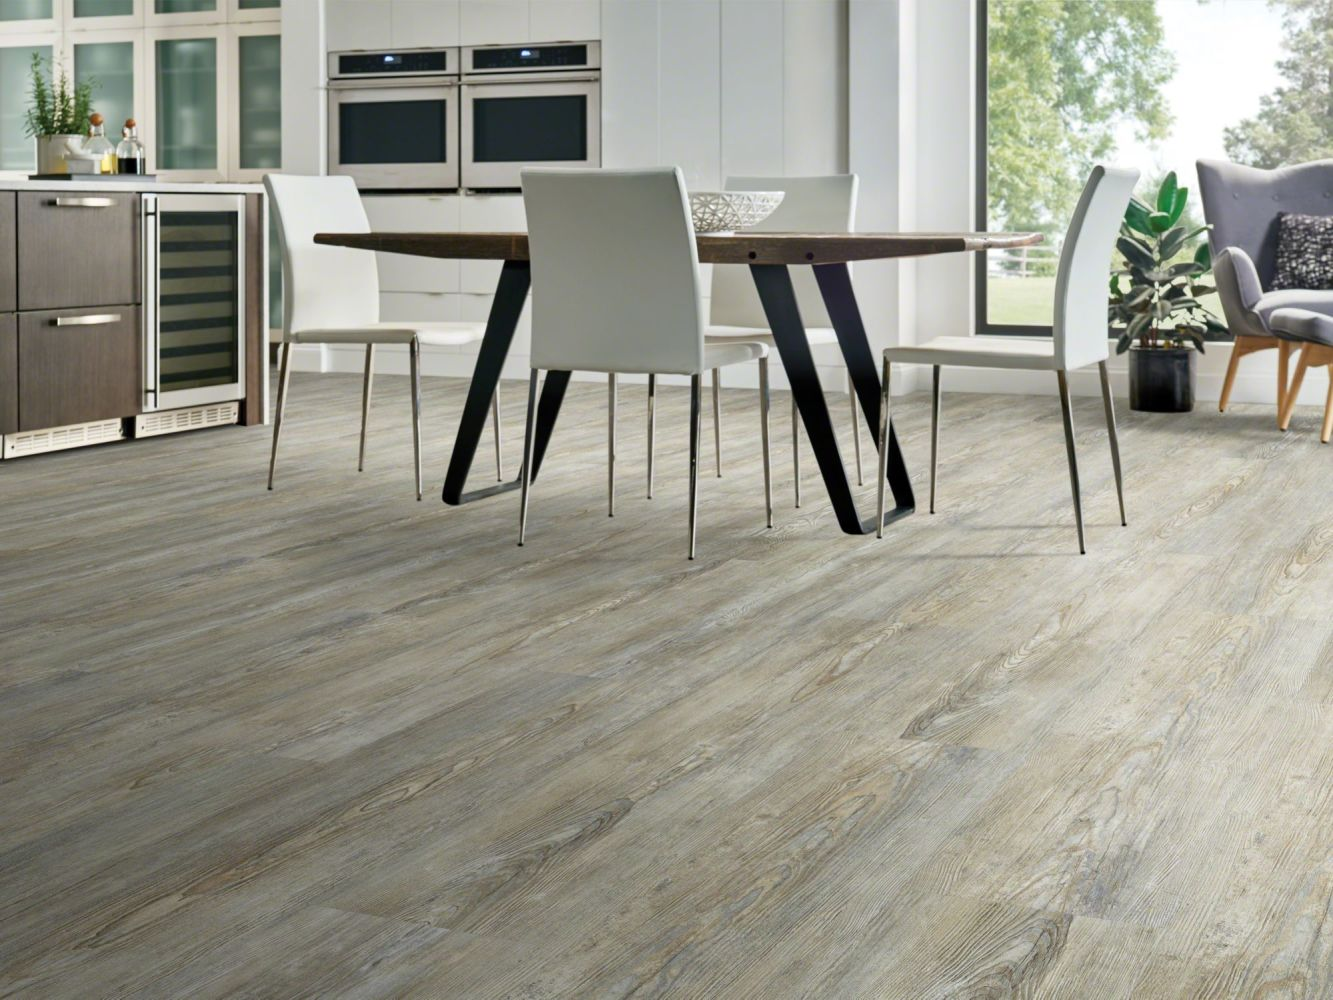 Shaw Floors Resilient Residential Rainier Plus Legend Pine 05031_0456V